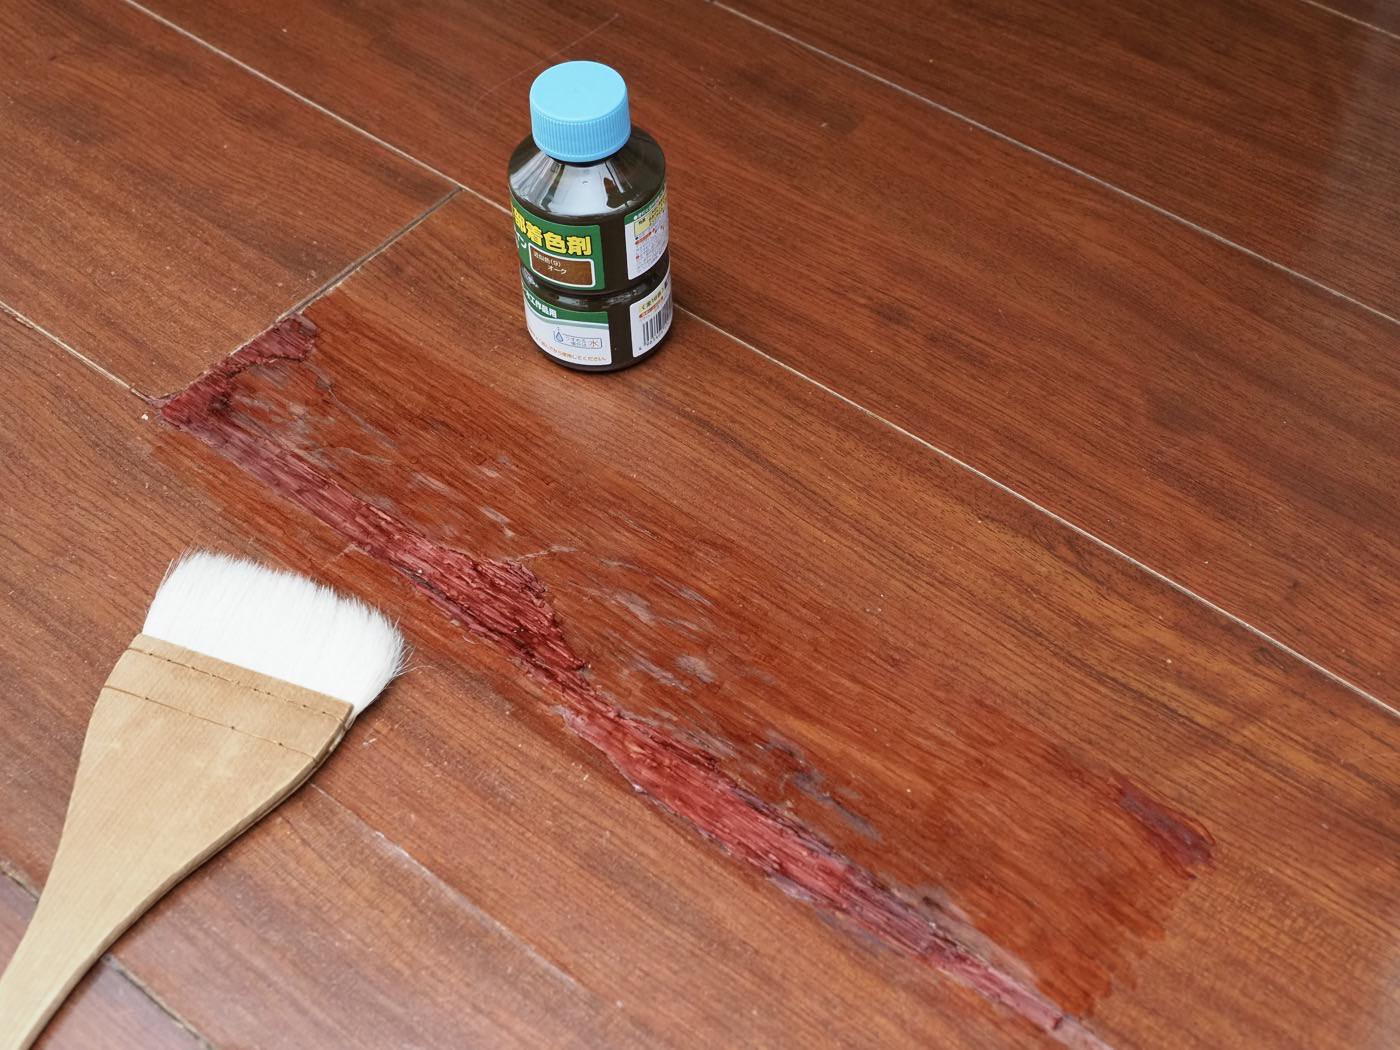 Repaired badly cracked flooring with diy 00012